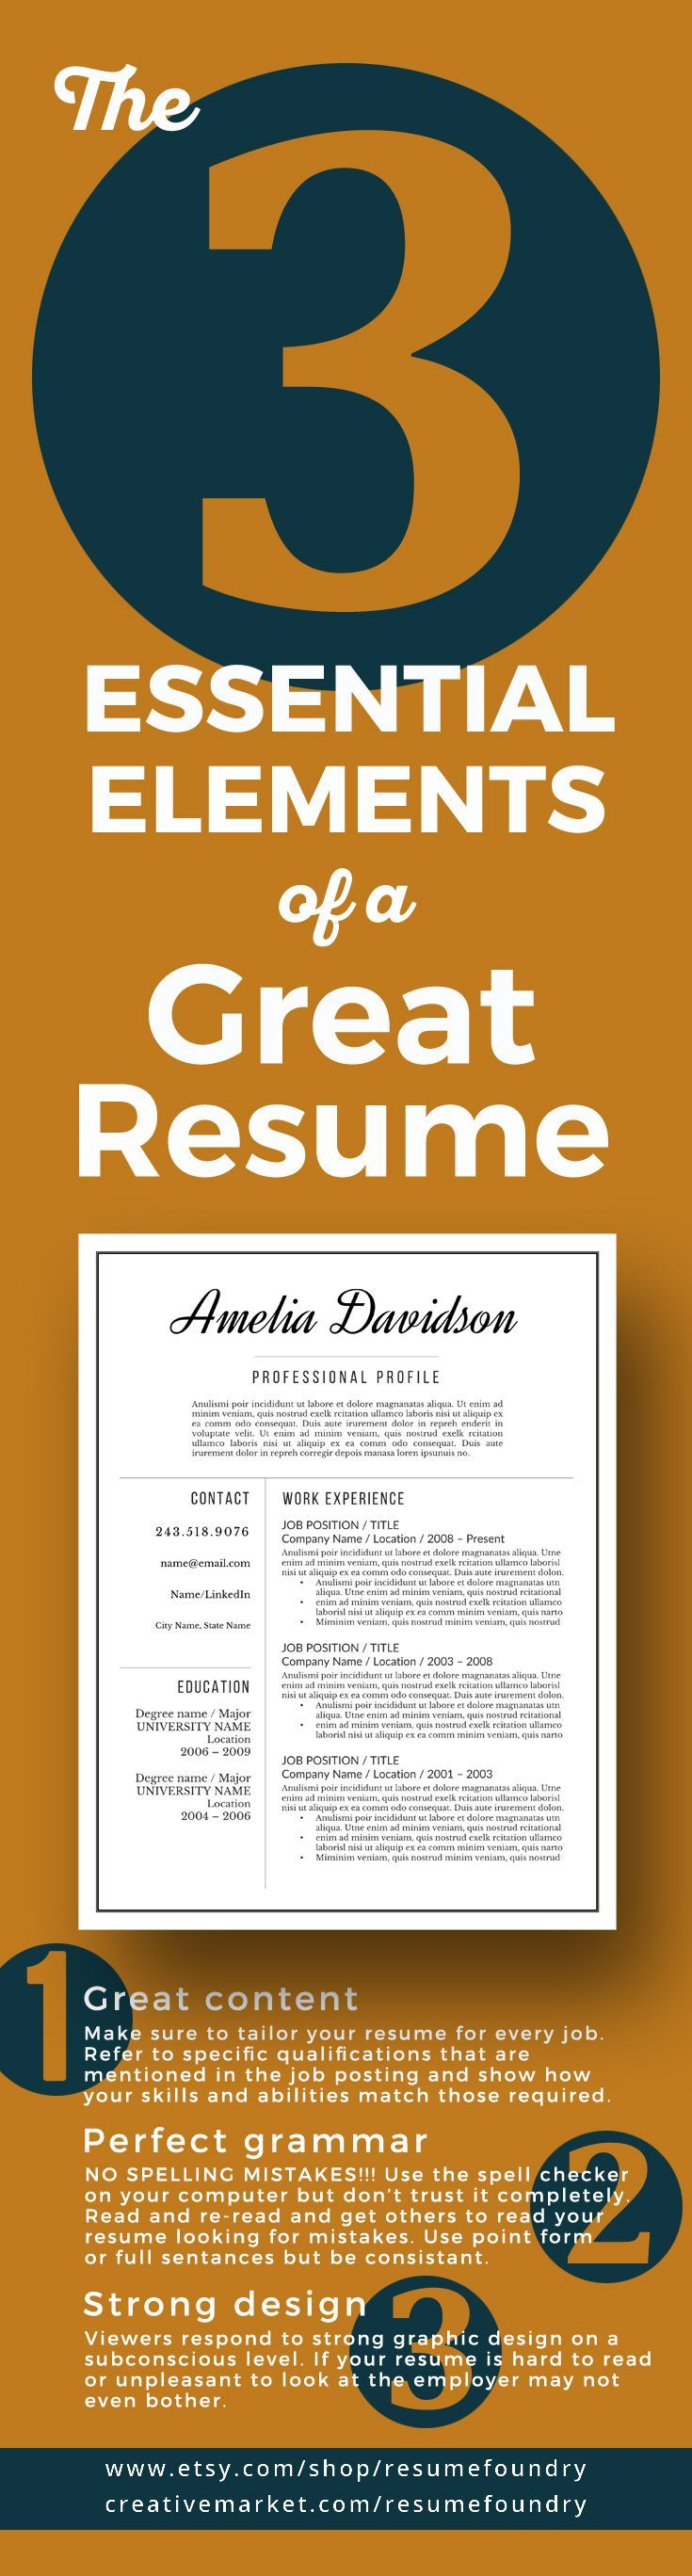 Perfect Your Resume Make Sure To Include These Three Essential Elements To Perfect Your .